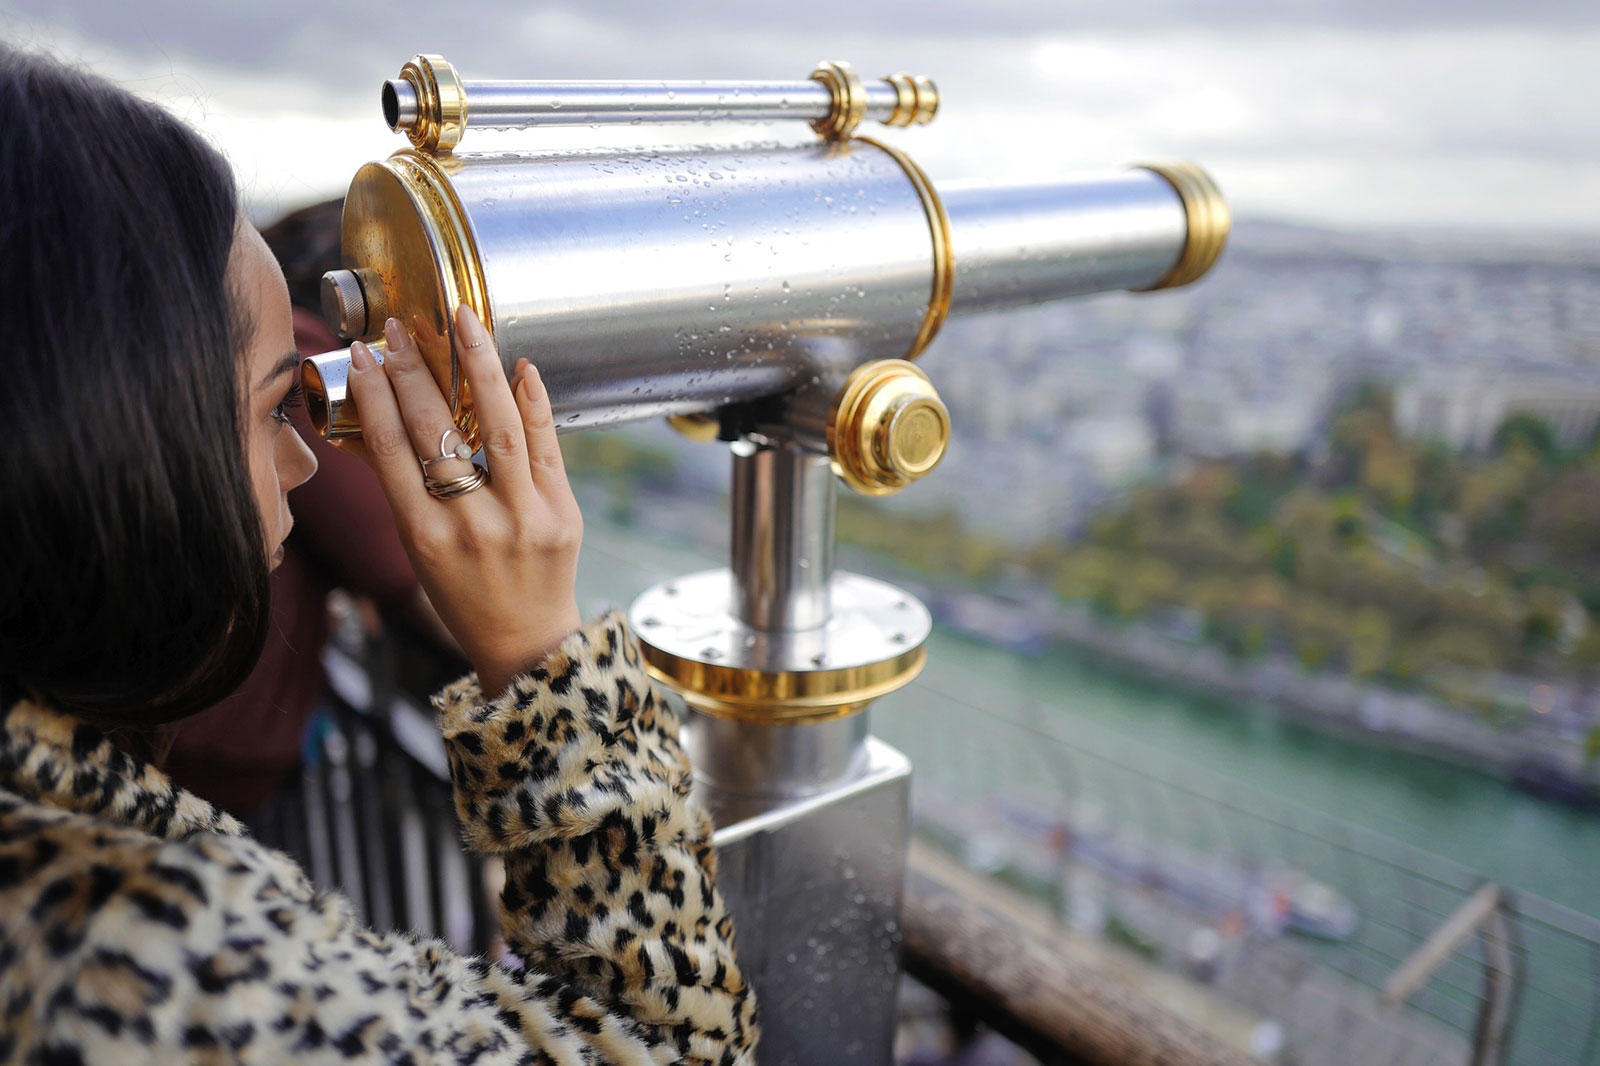 where is the environment? can't see it through this telescope. Or can I?